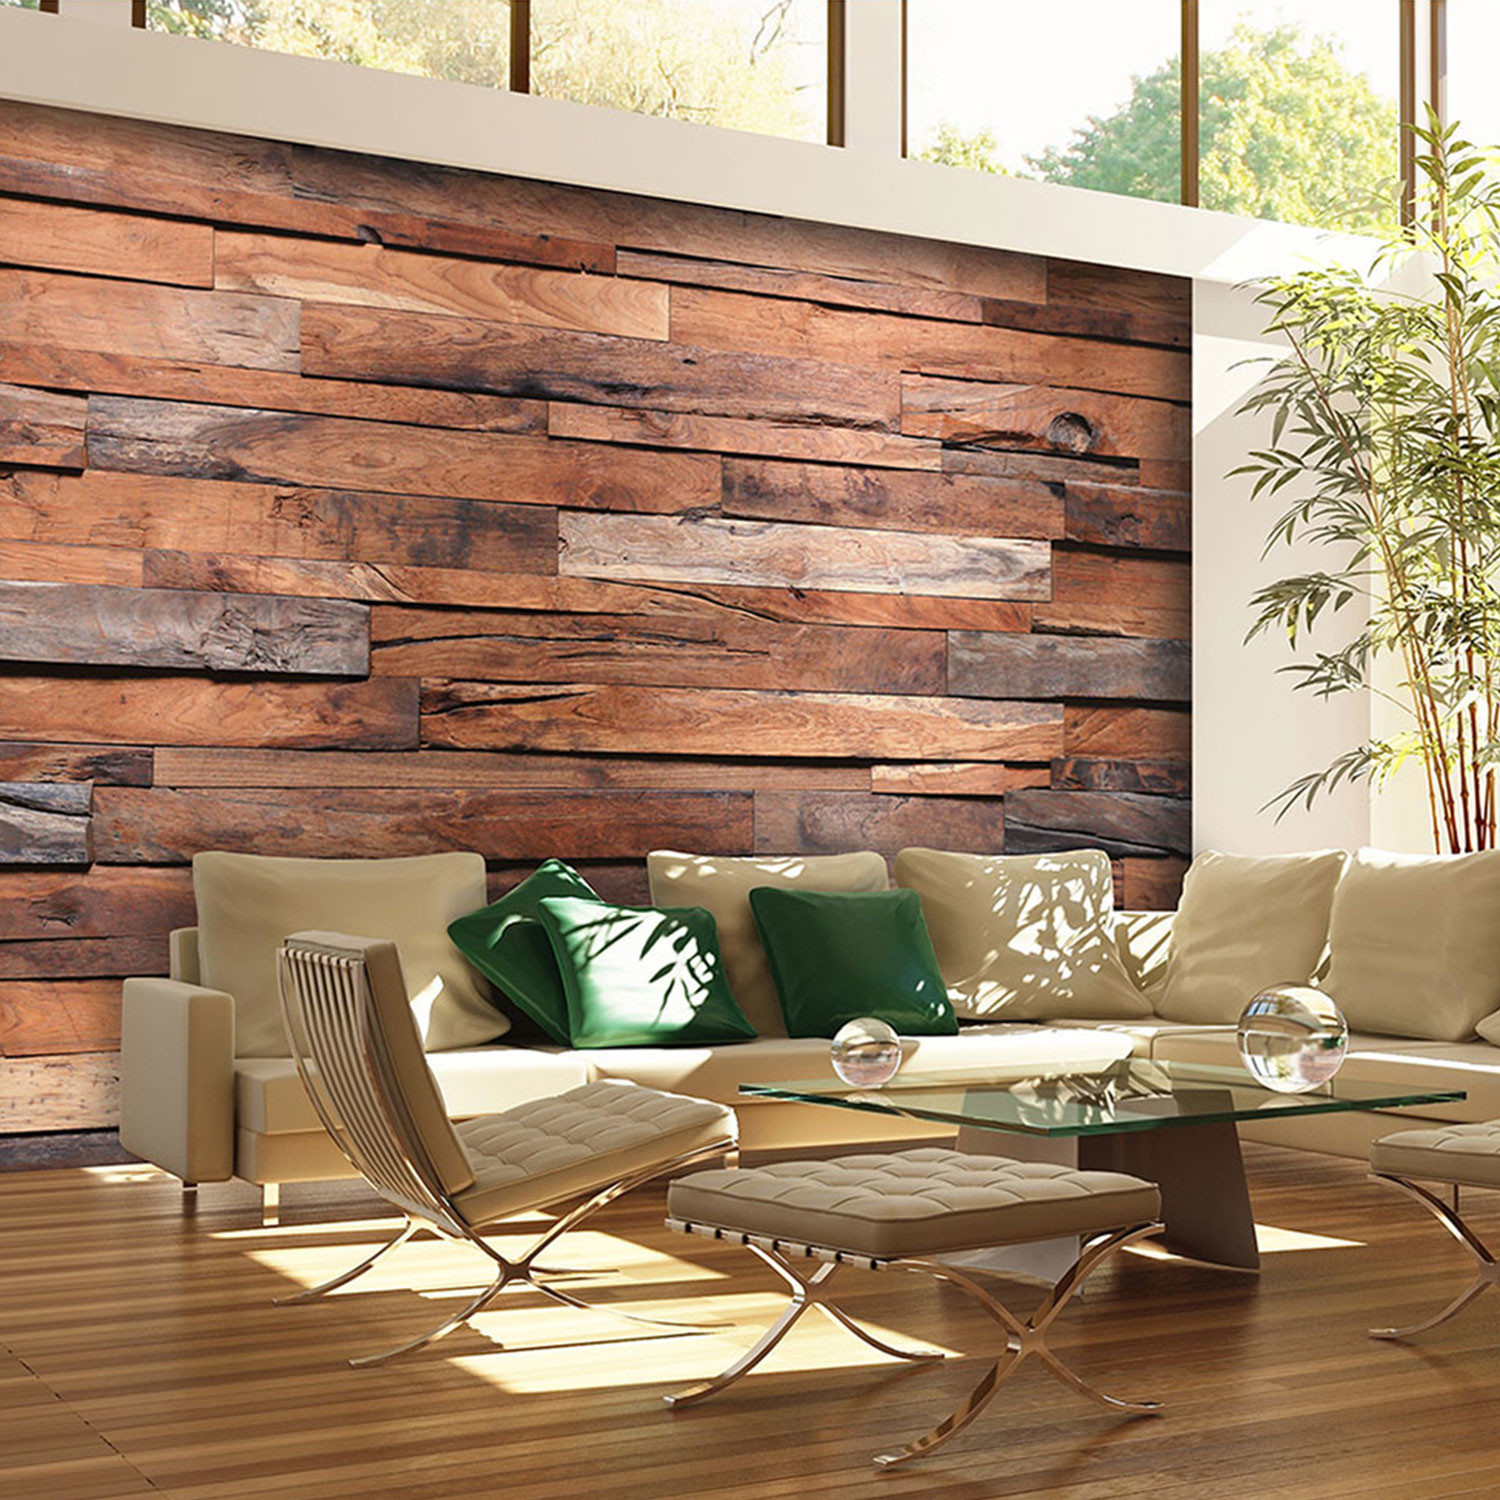 Wooden wall walplus touch of modern - Fotomurales pared ...